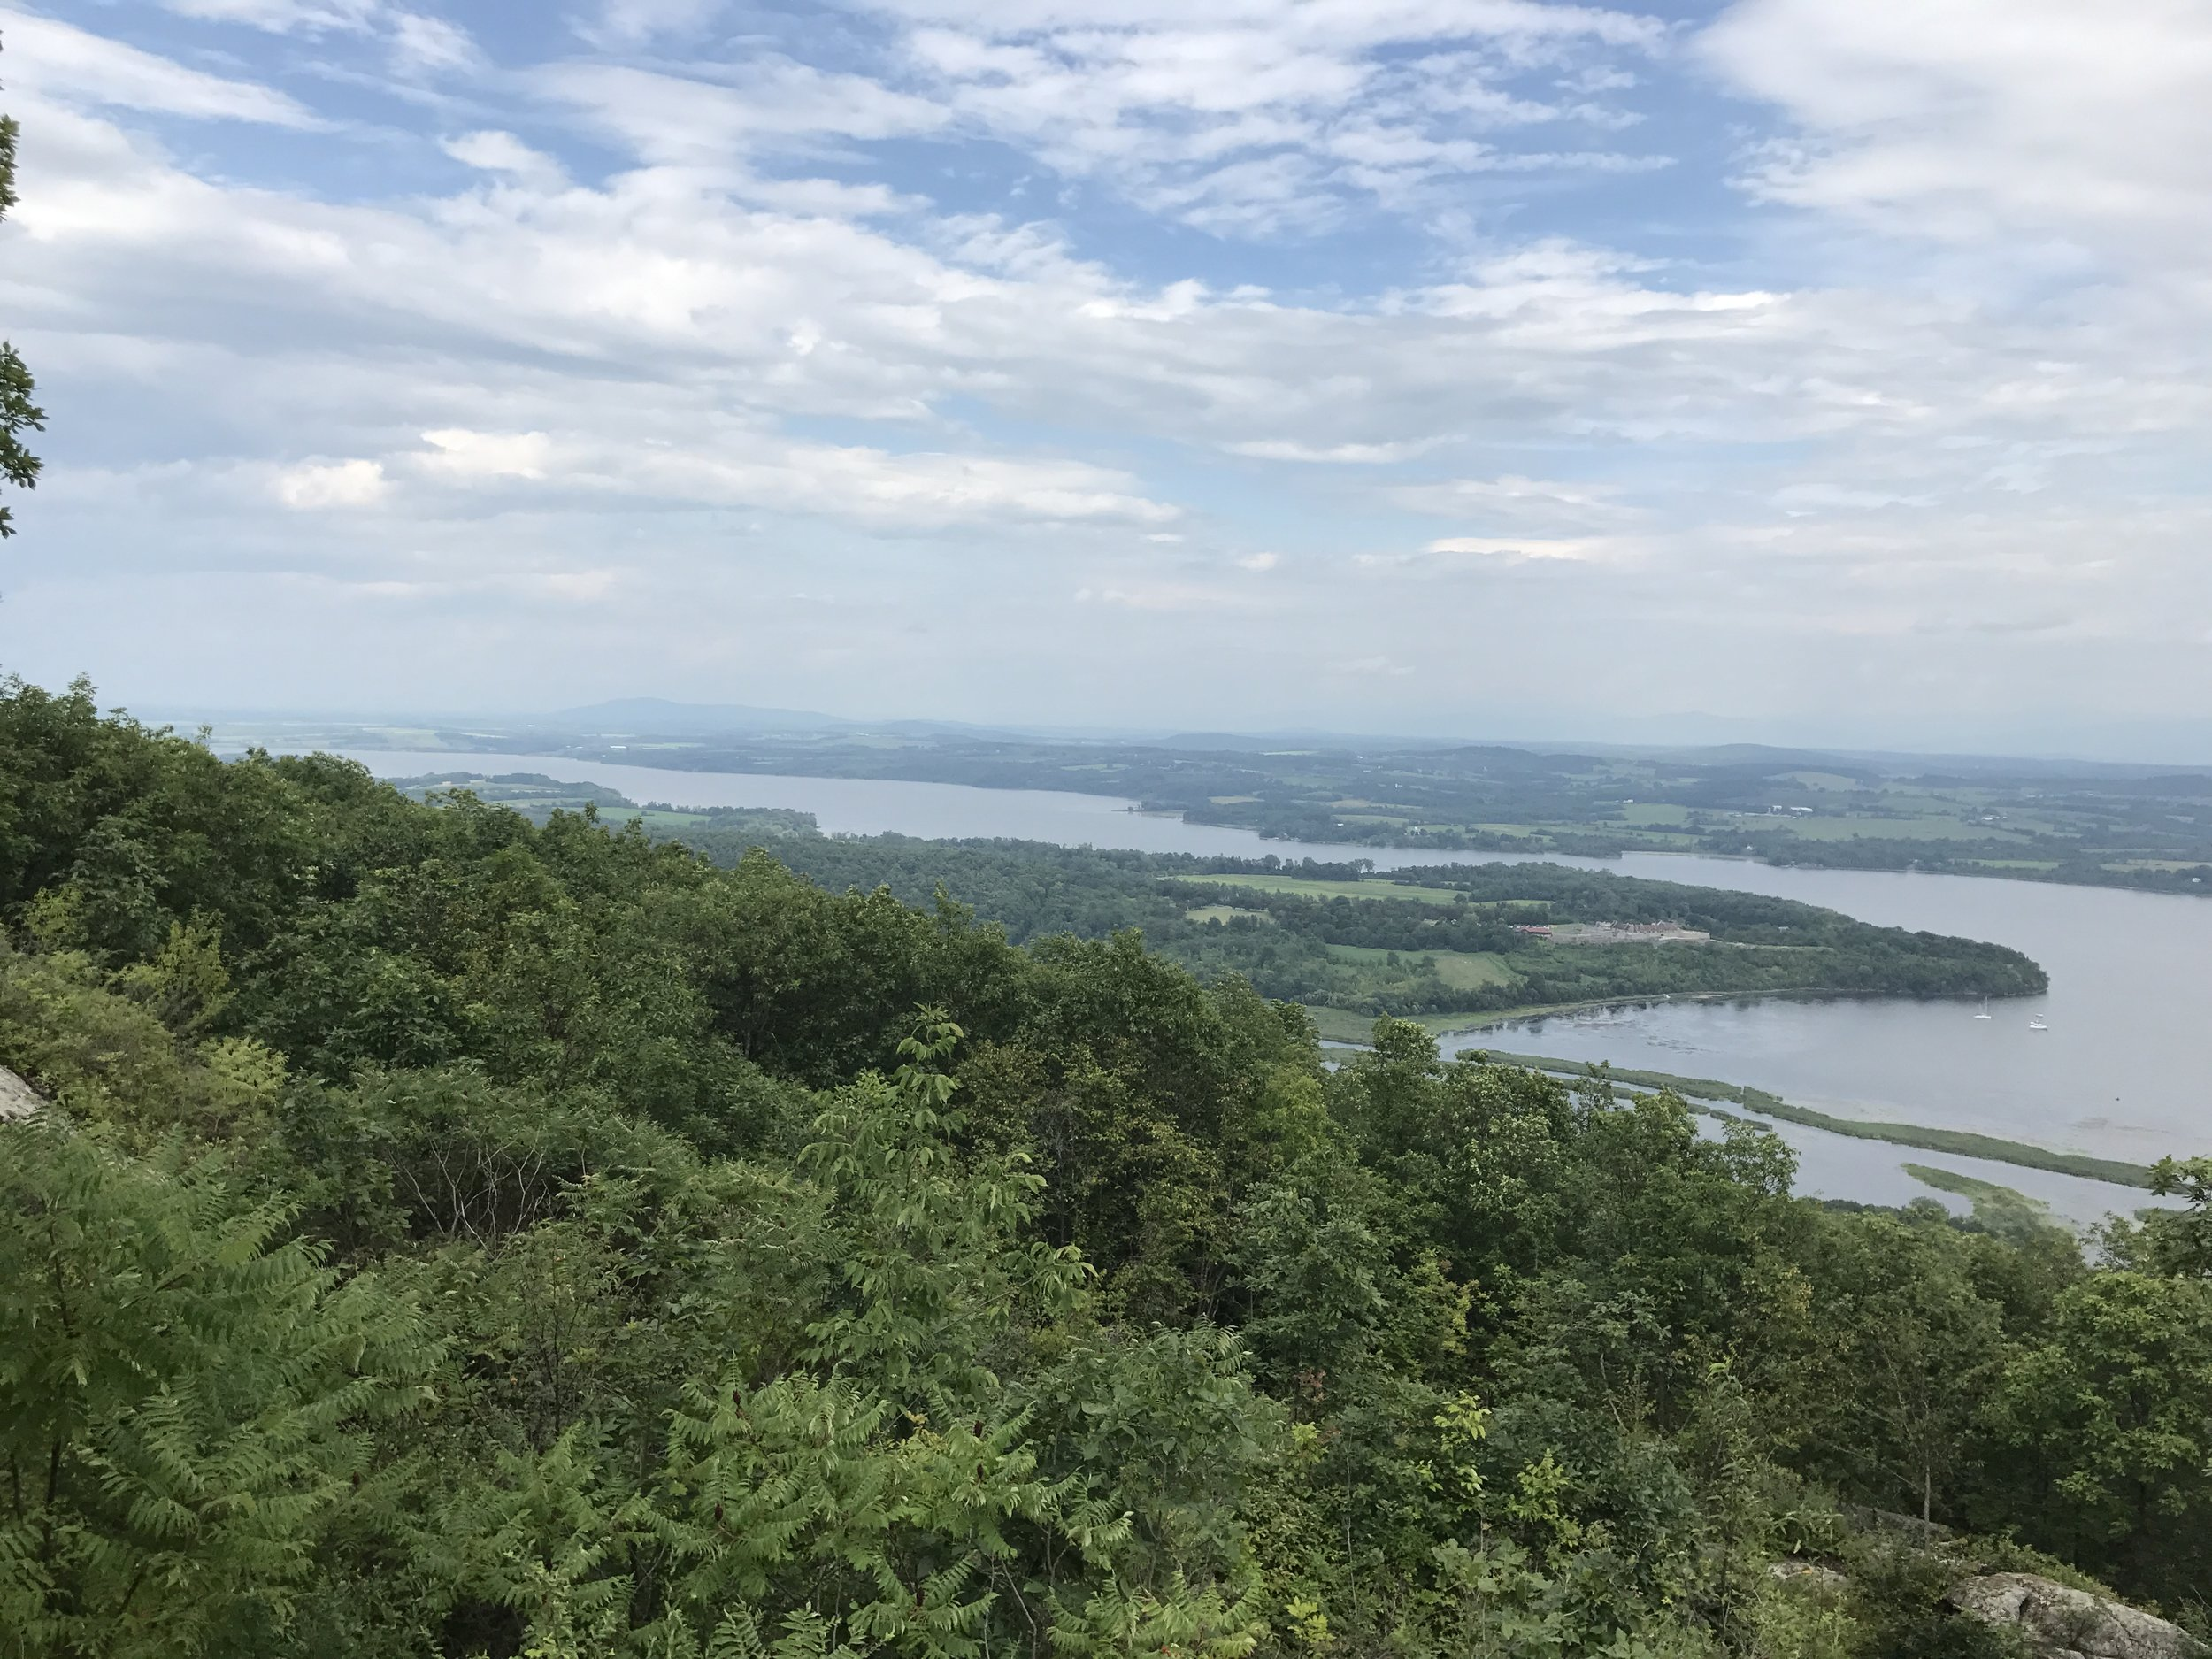 View from the top of Mount Defiance